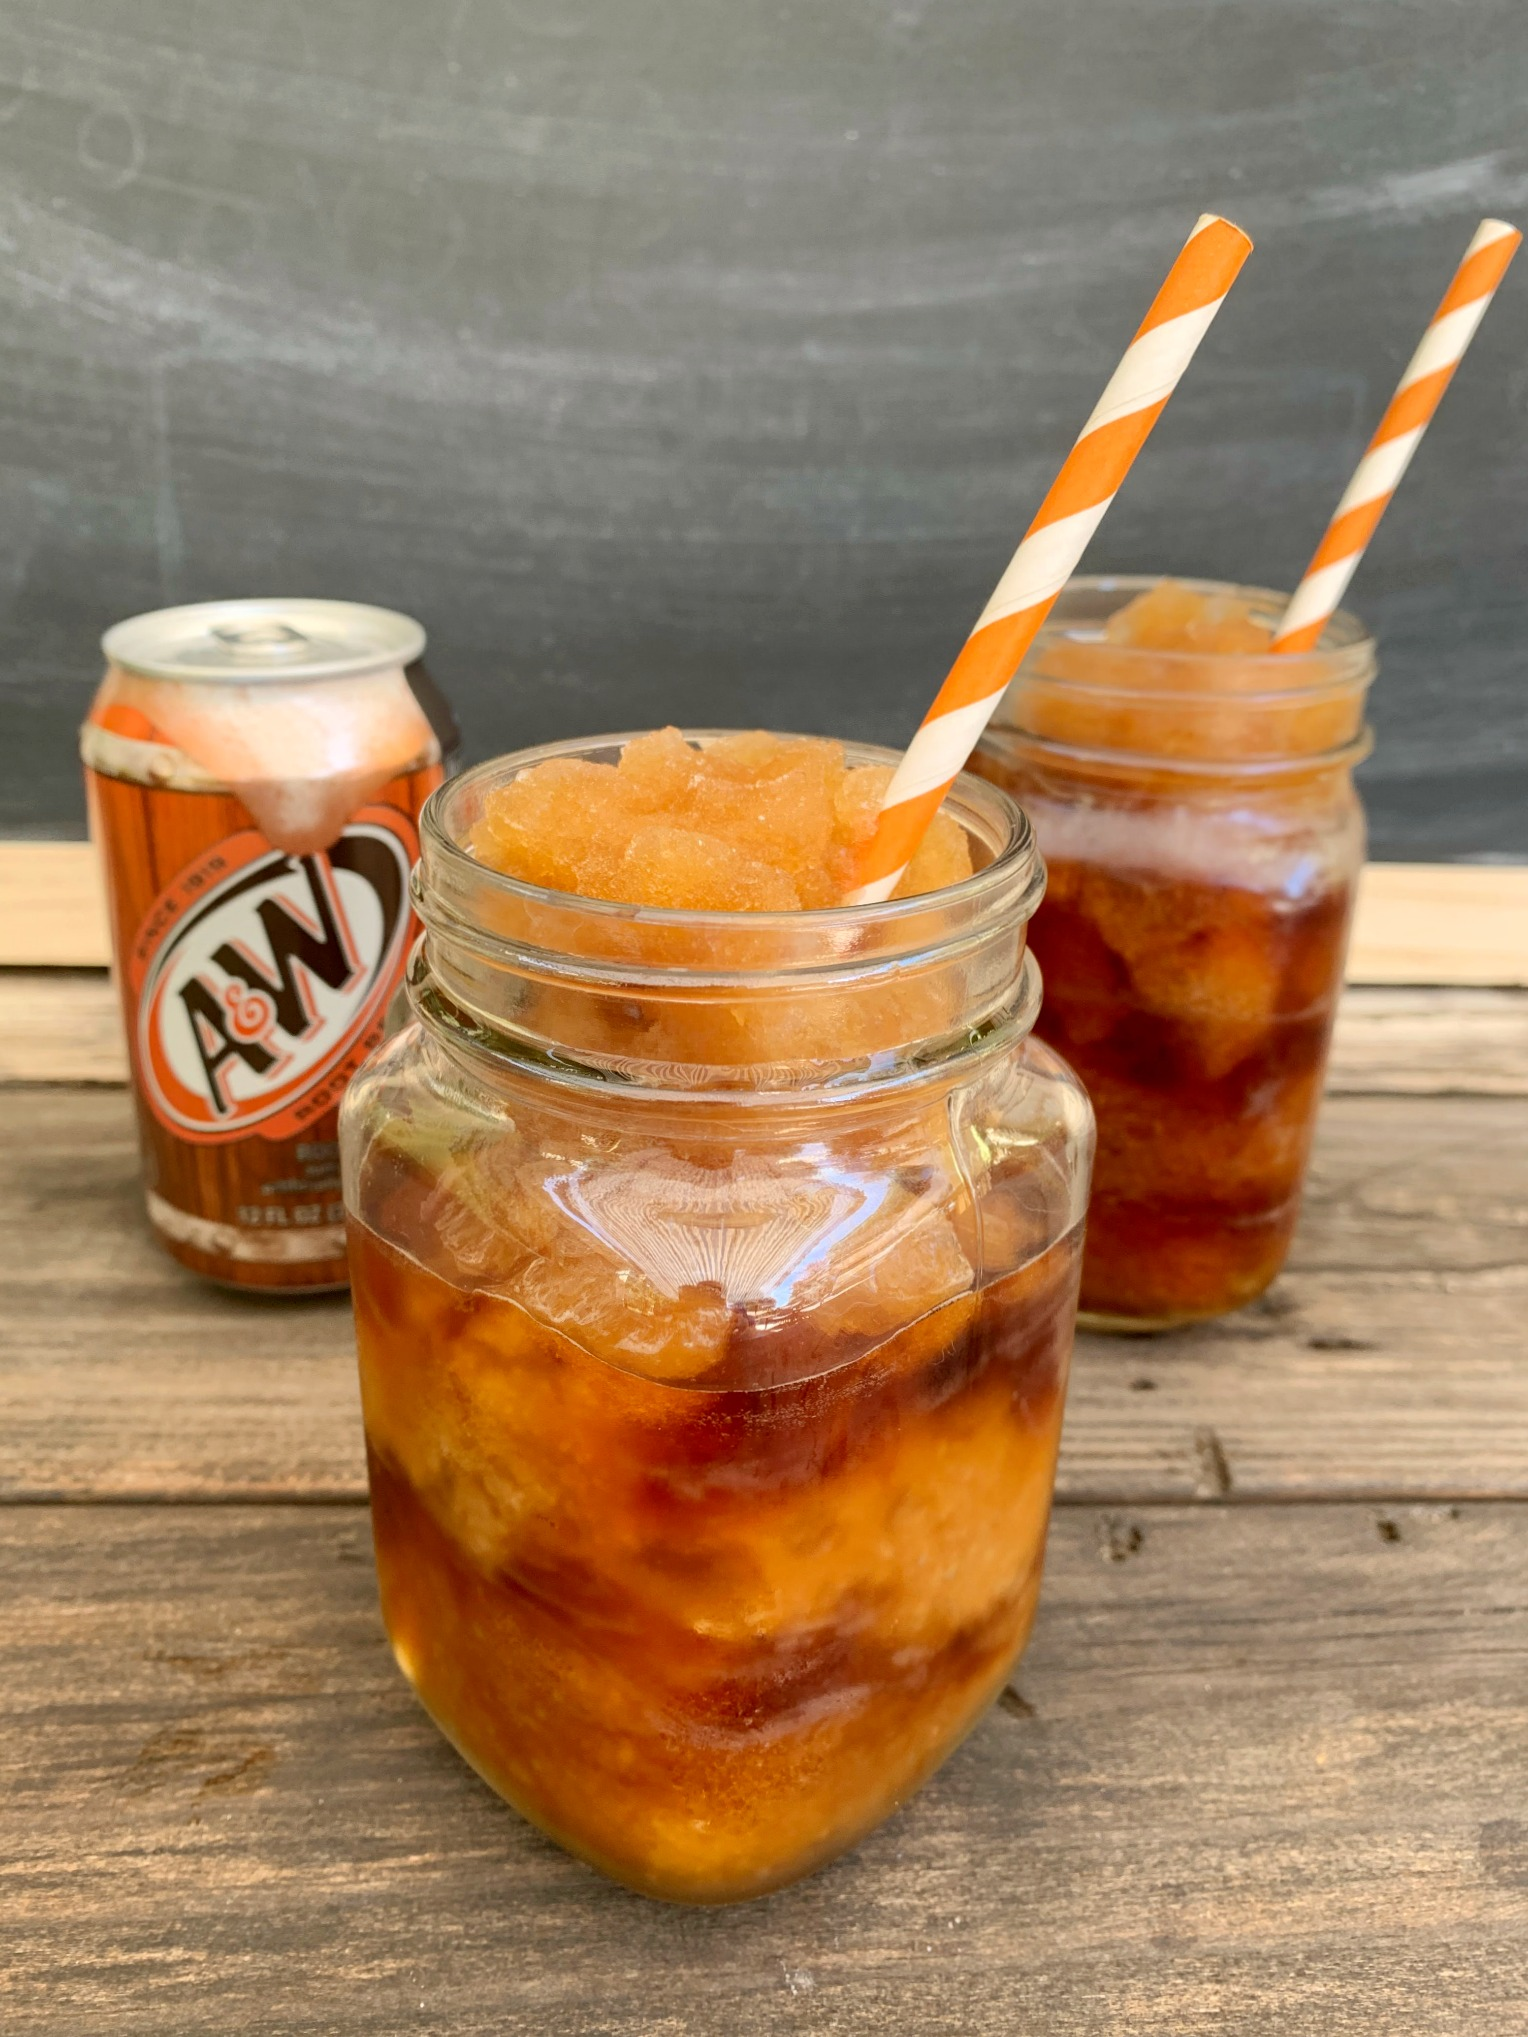 2 root beer slushies with paper straws and a can of root beer behind them